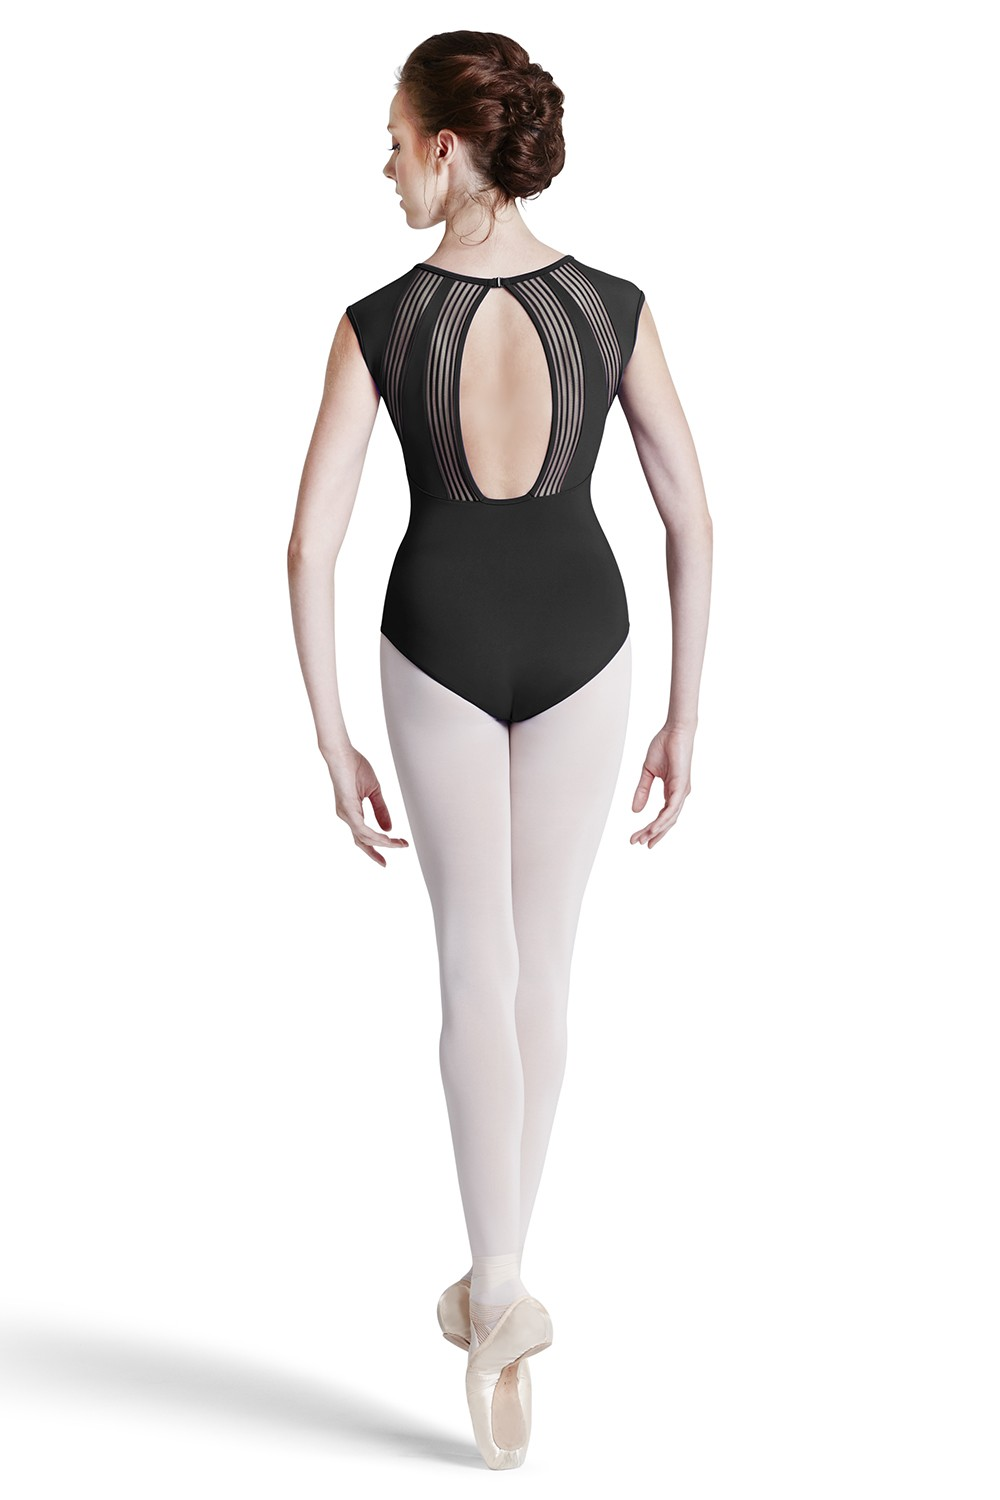 Body Con Maniche Ad Aletta E Apertura A Goccia Sul Retro Women's Dance Leotards